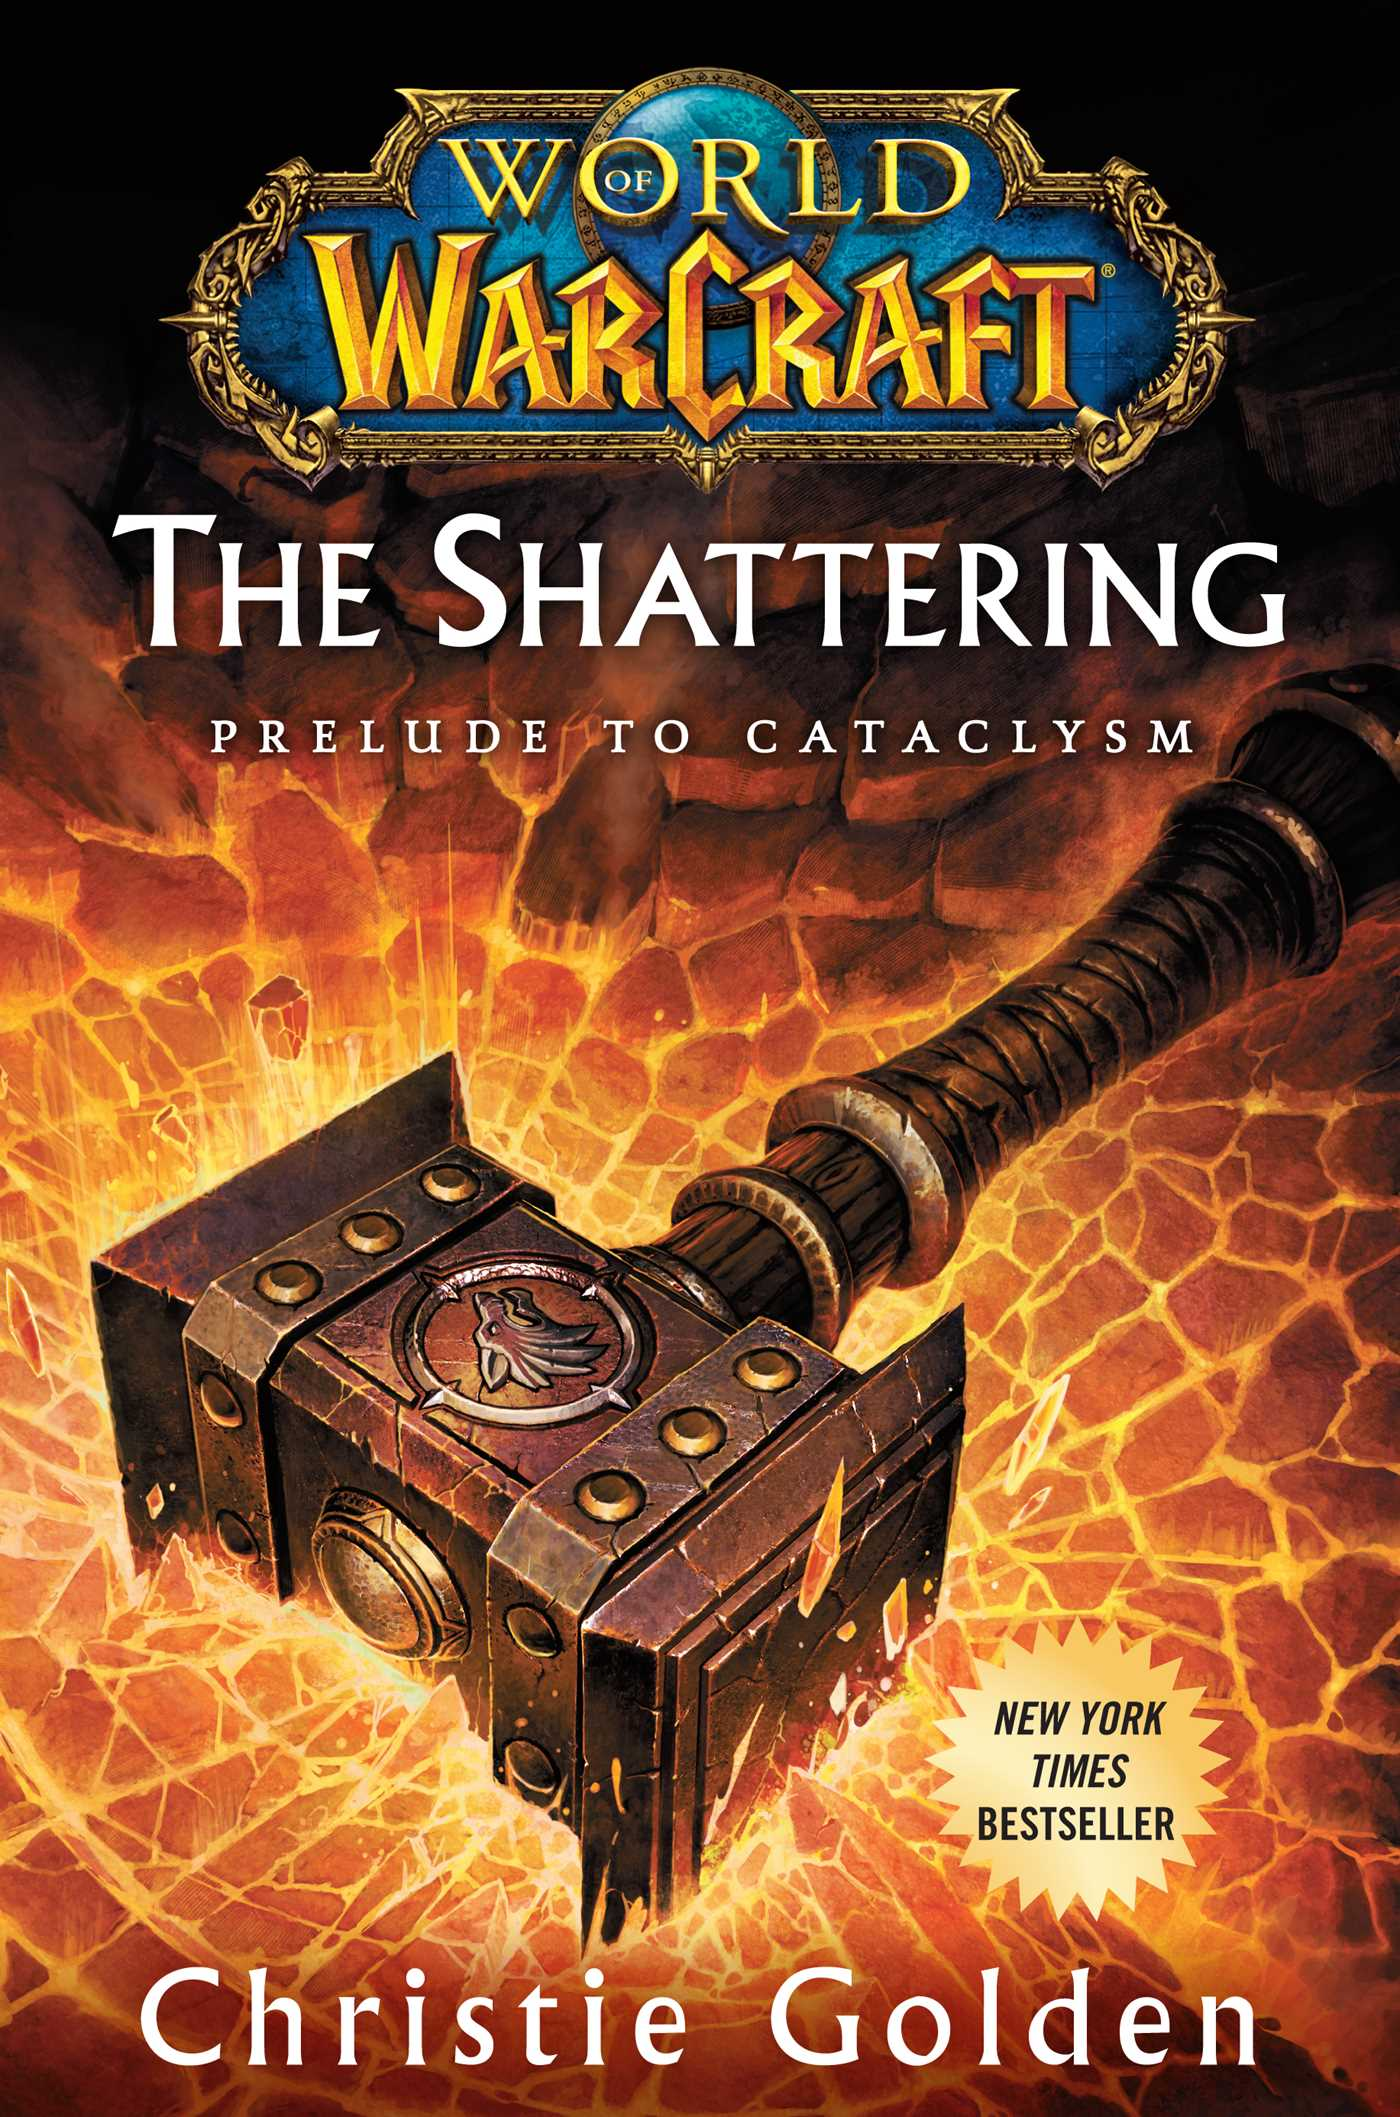 World of warcraft the shattering 9781439171431 hr